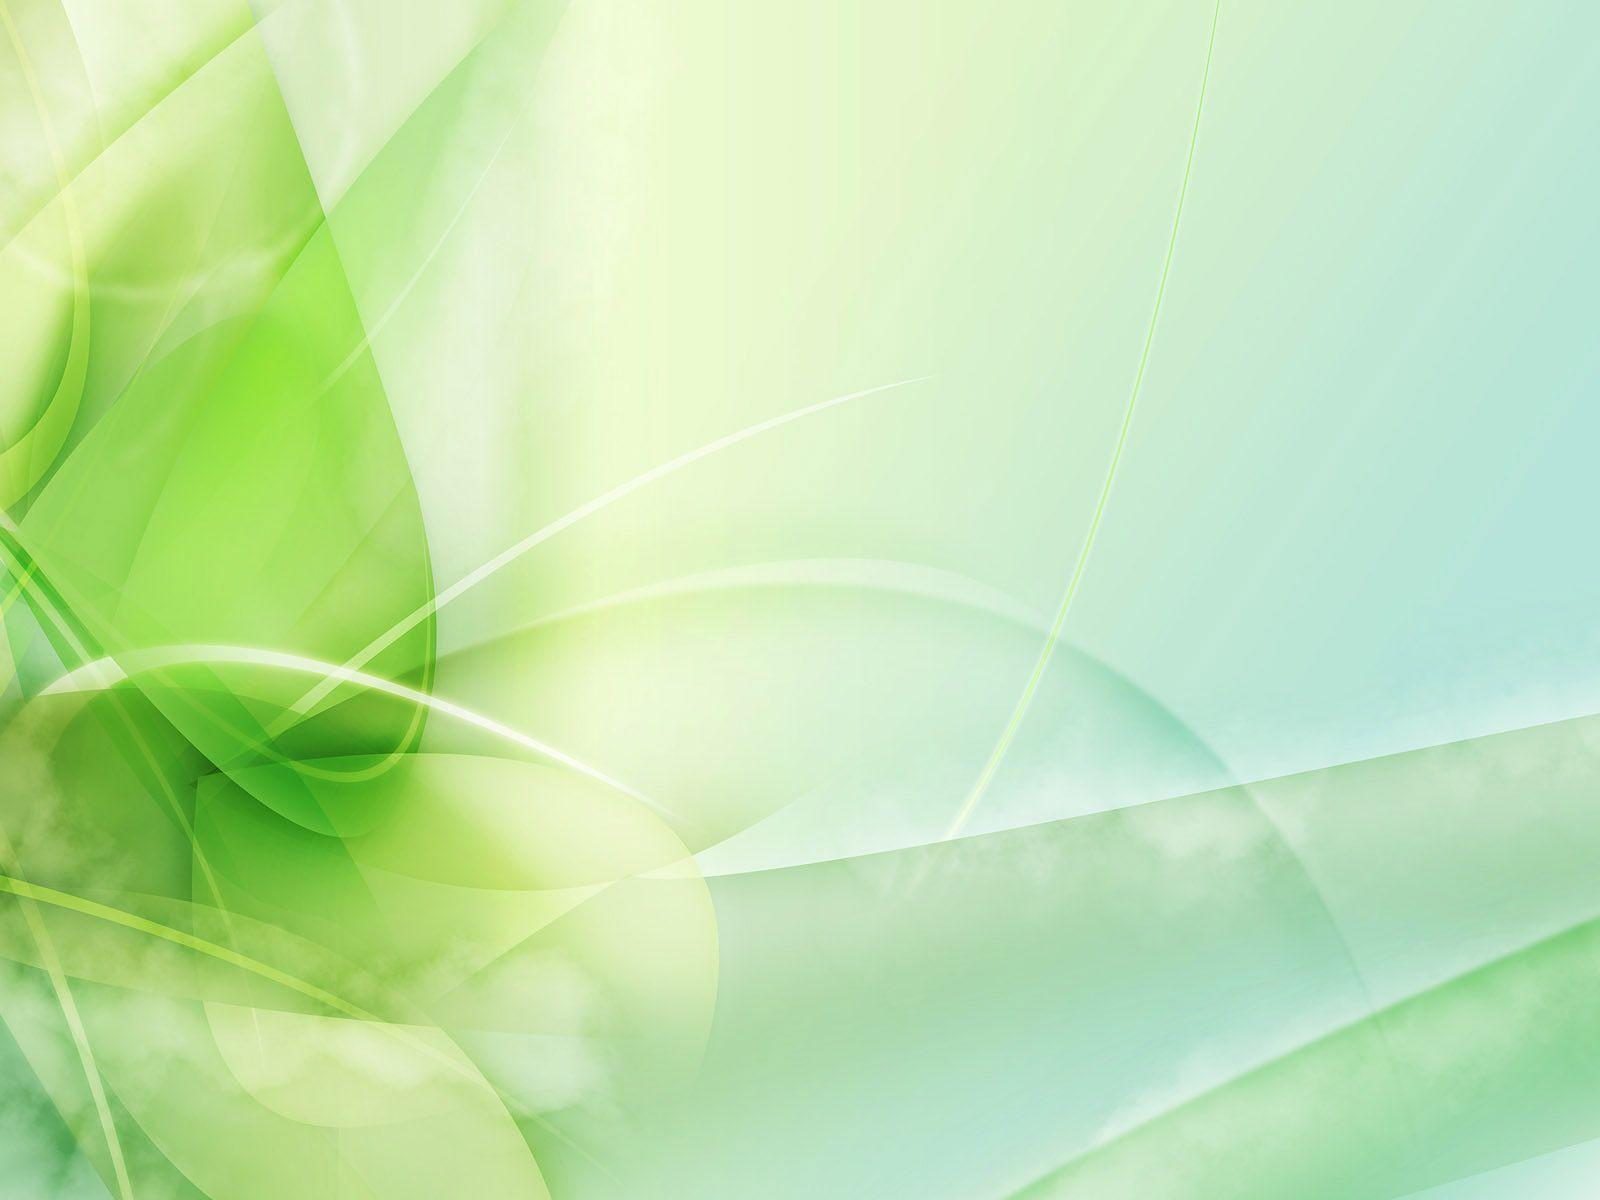 blue and green graphic wallpaper - photo #40